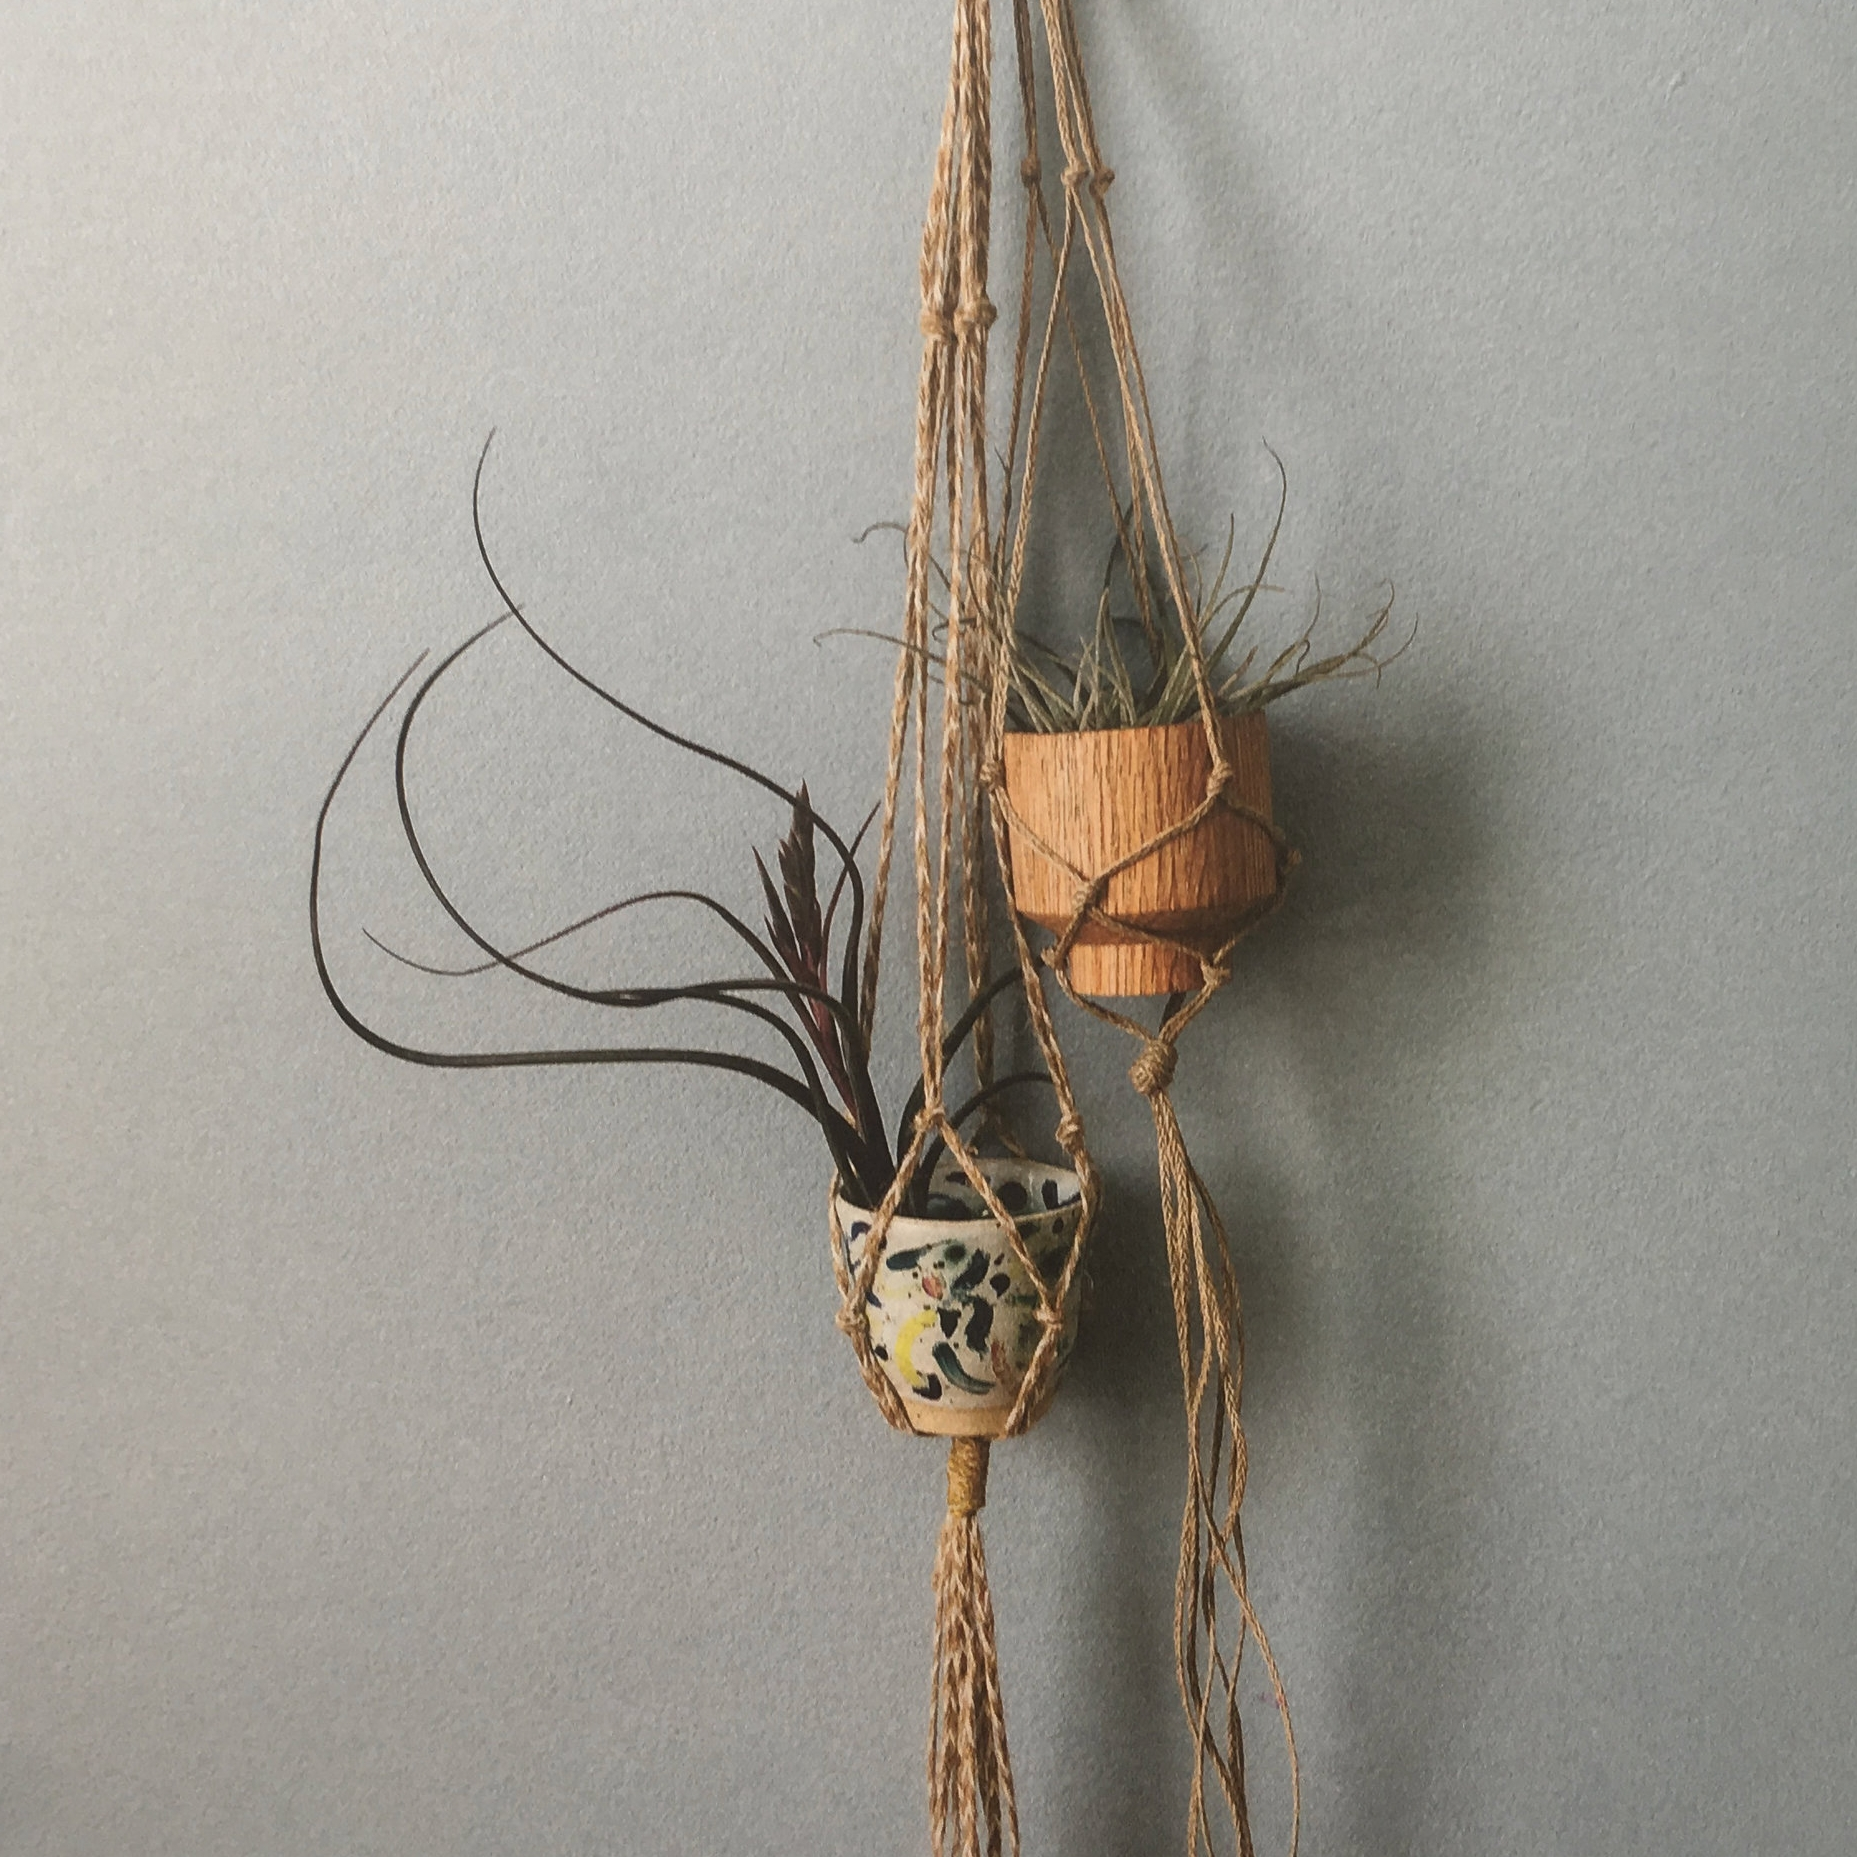 Try different textures of rope and twine